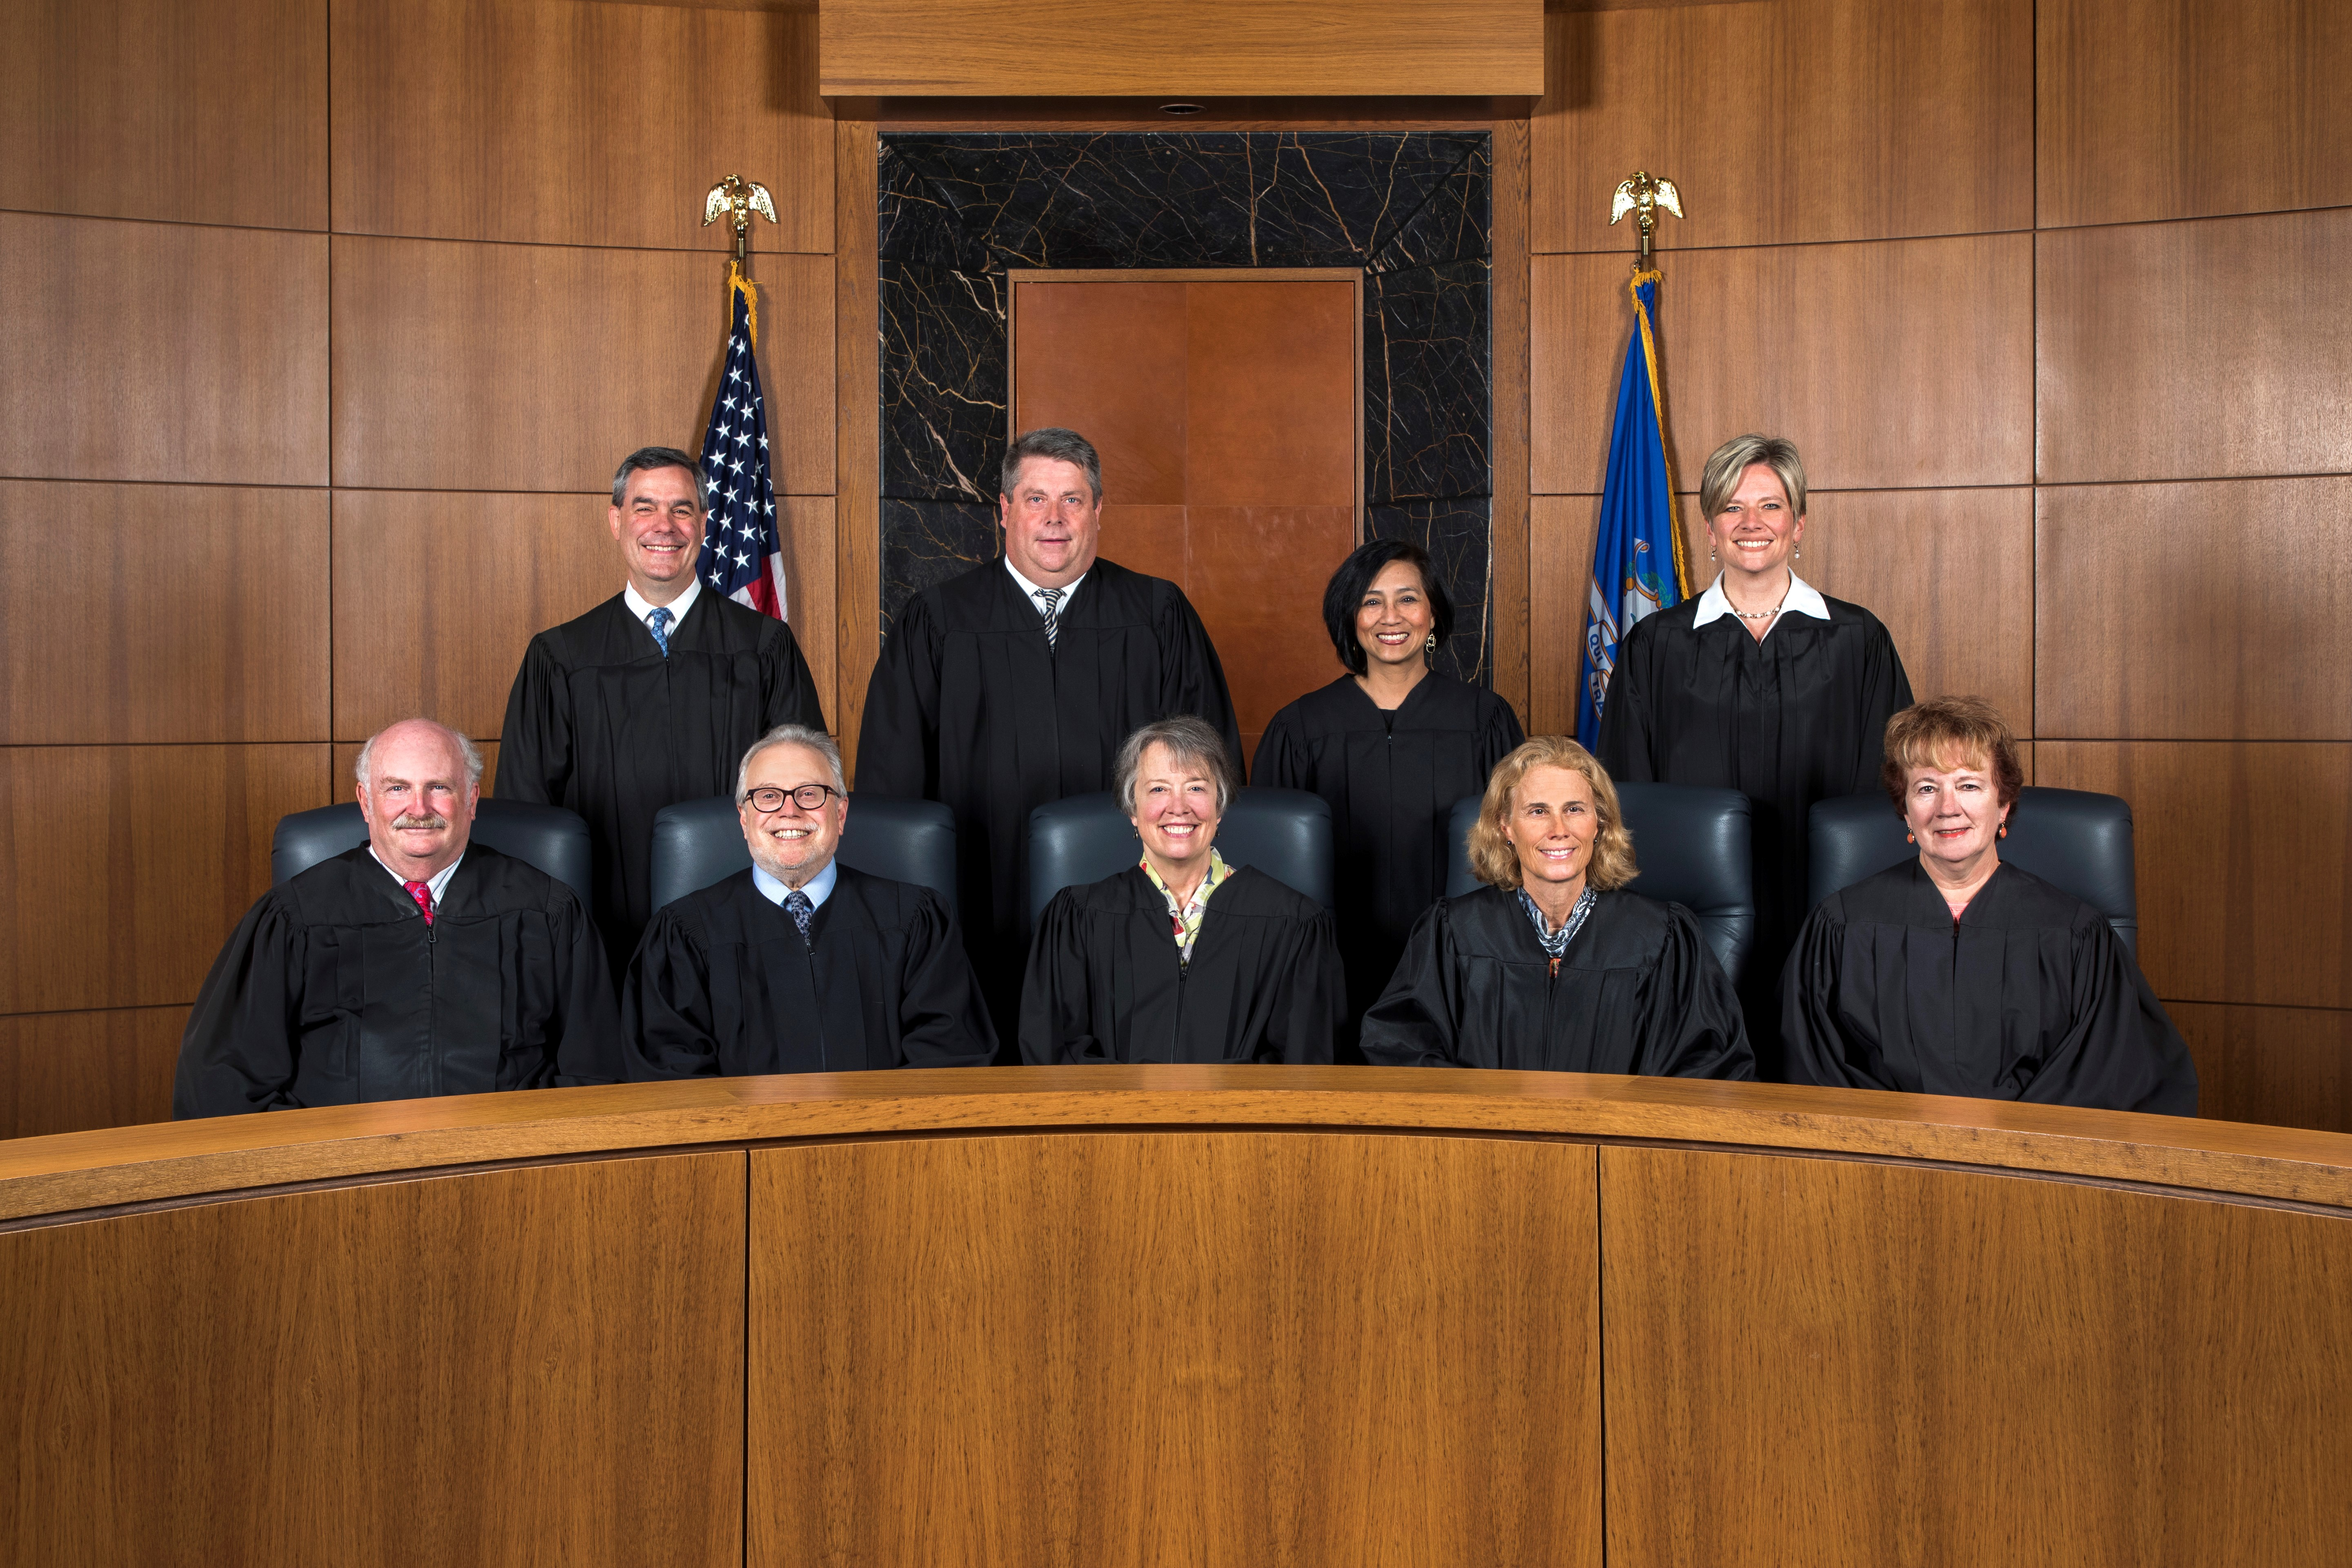 Biographies - Connecticut Supreme and Appellate Courts